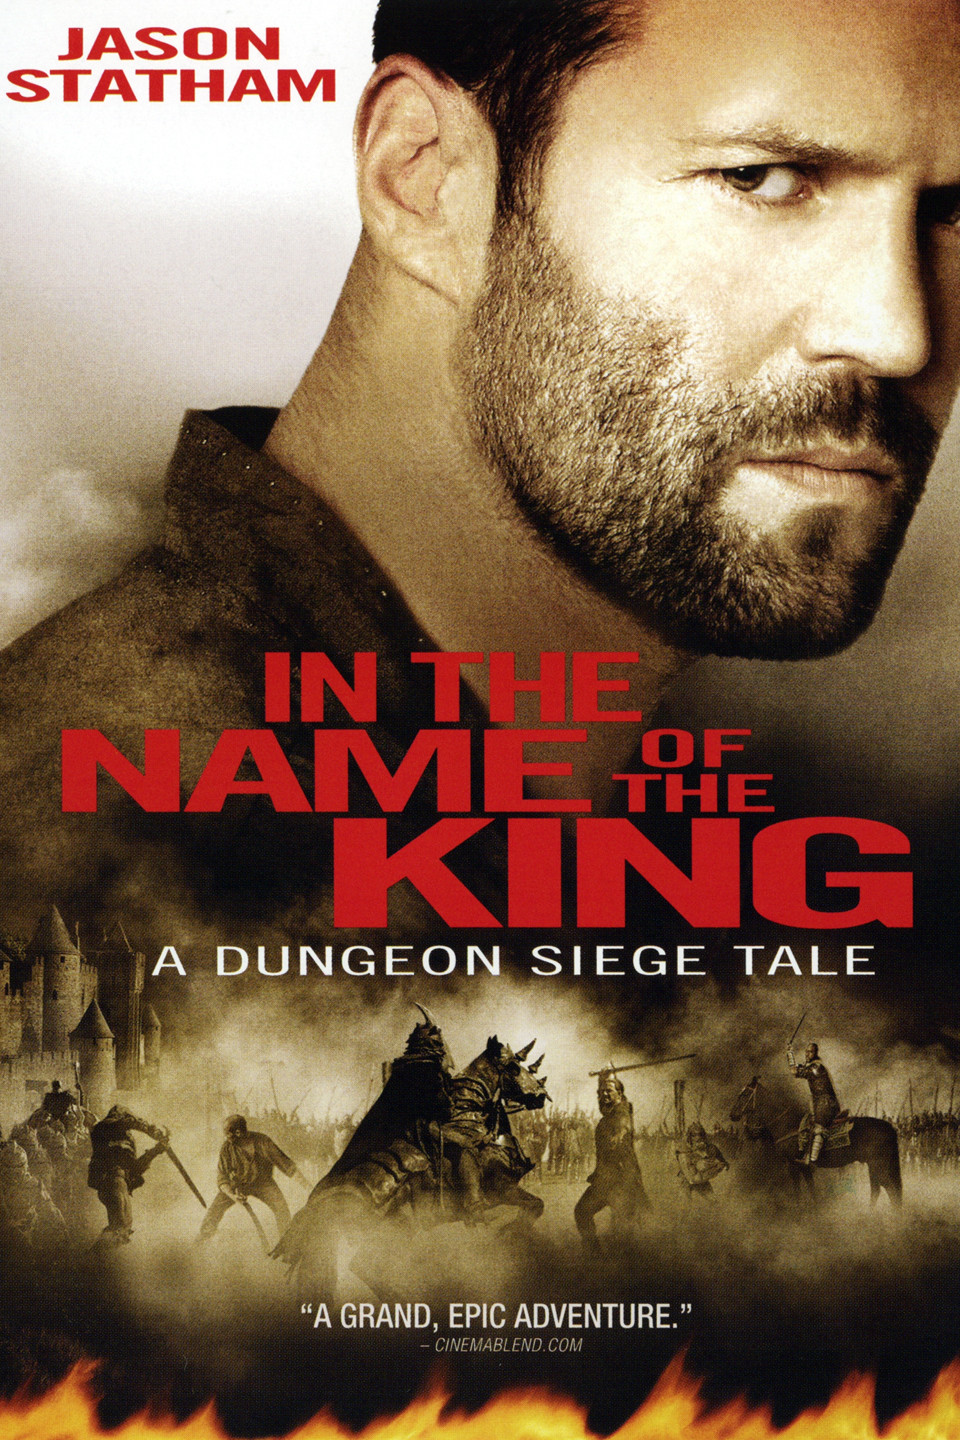 In the Name of the King: A Dungeon Siege Tale-In the Name of the King: A Dungeon Siege Tale